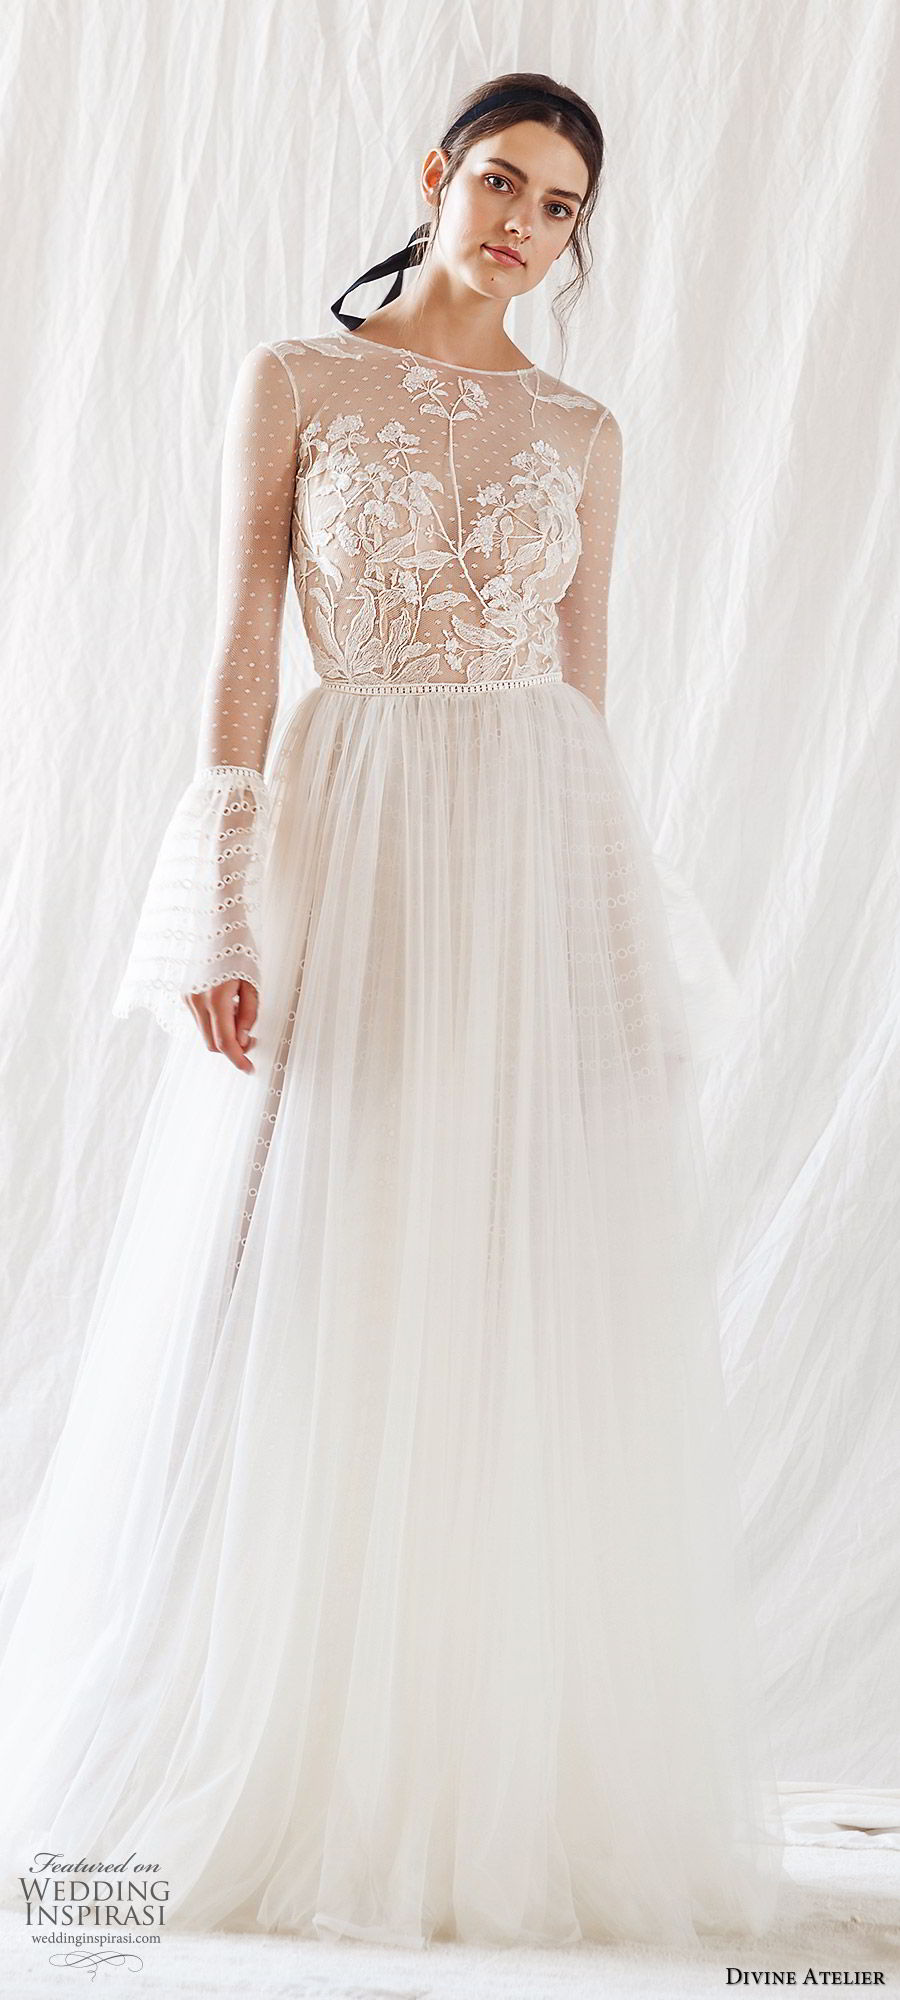 divine atelier 2019 bridal illusion long bell sleeves jewel neck sheer embellished bodice a line ball gown wedding dress (1) sweep train romantic elegant mv